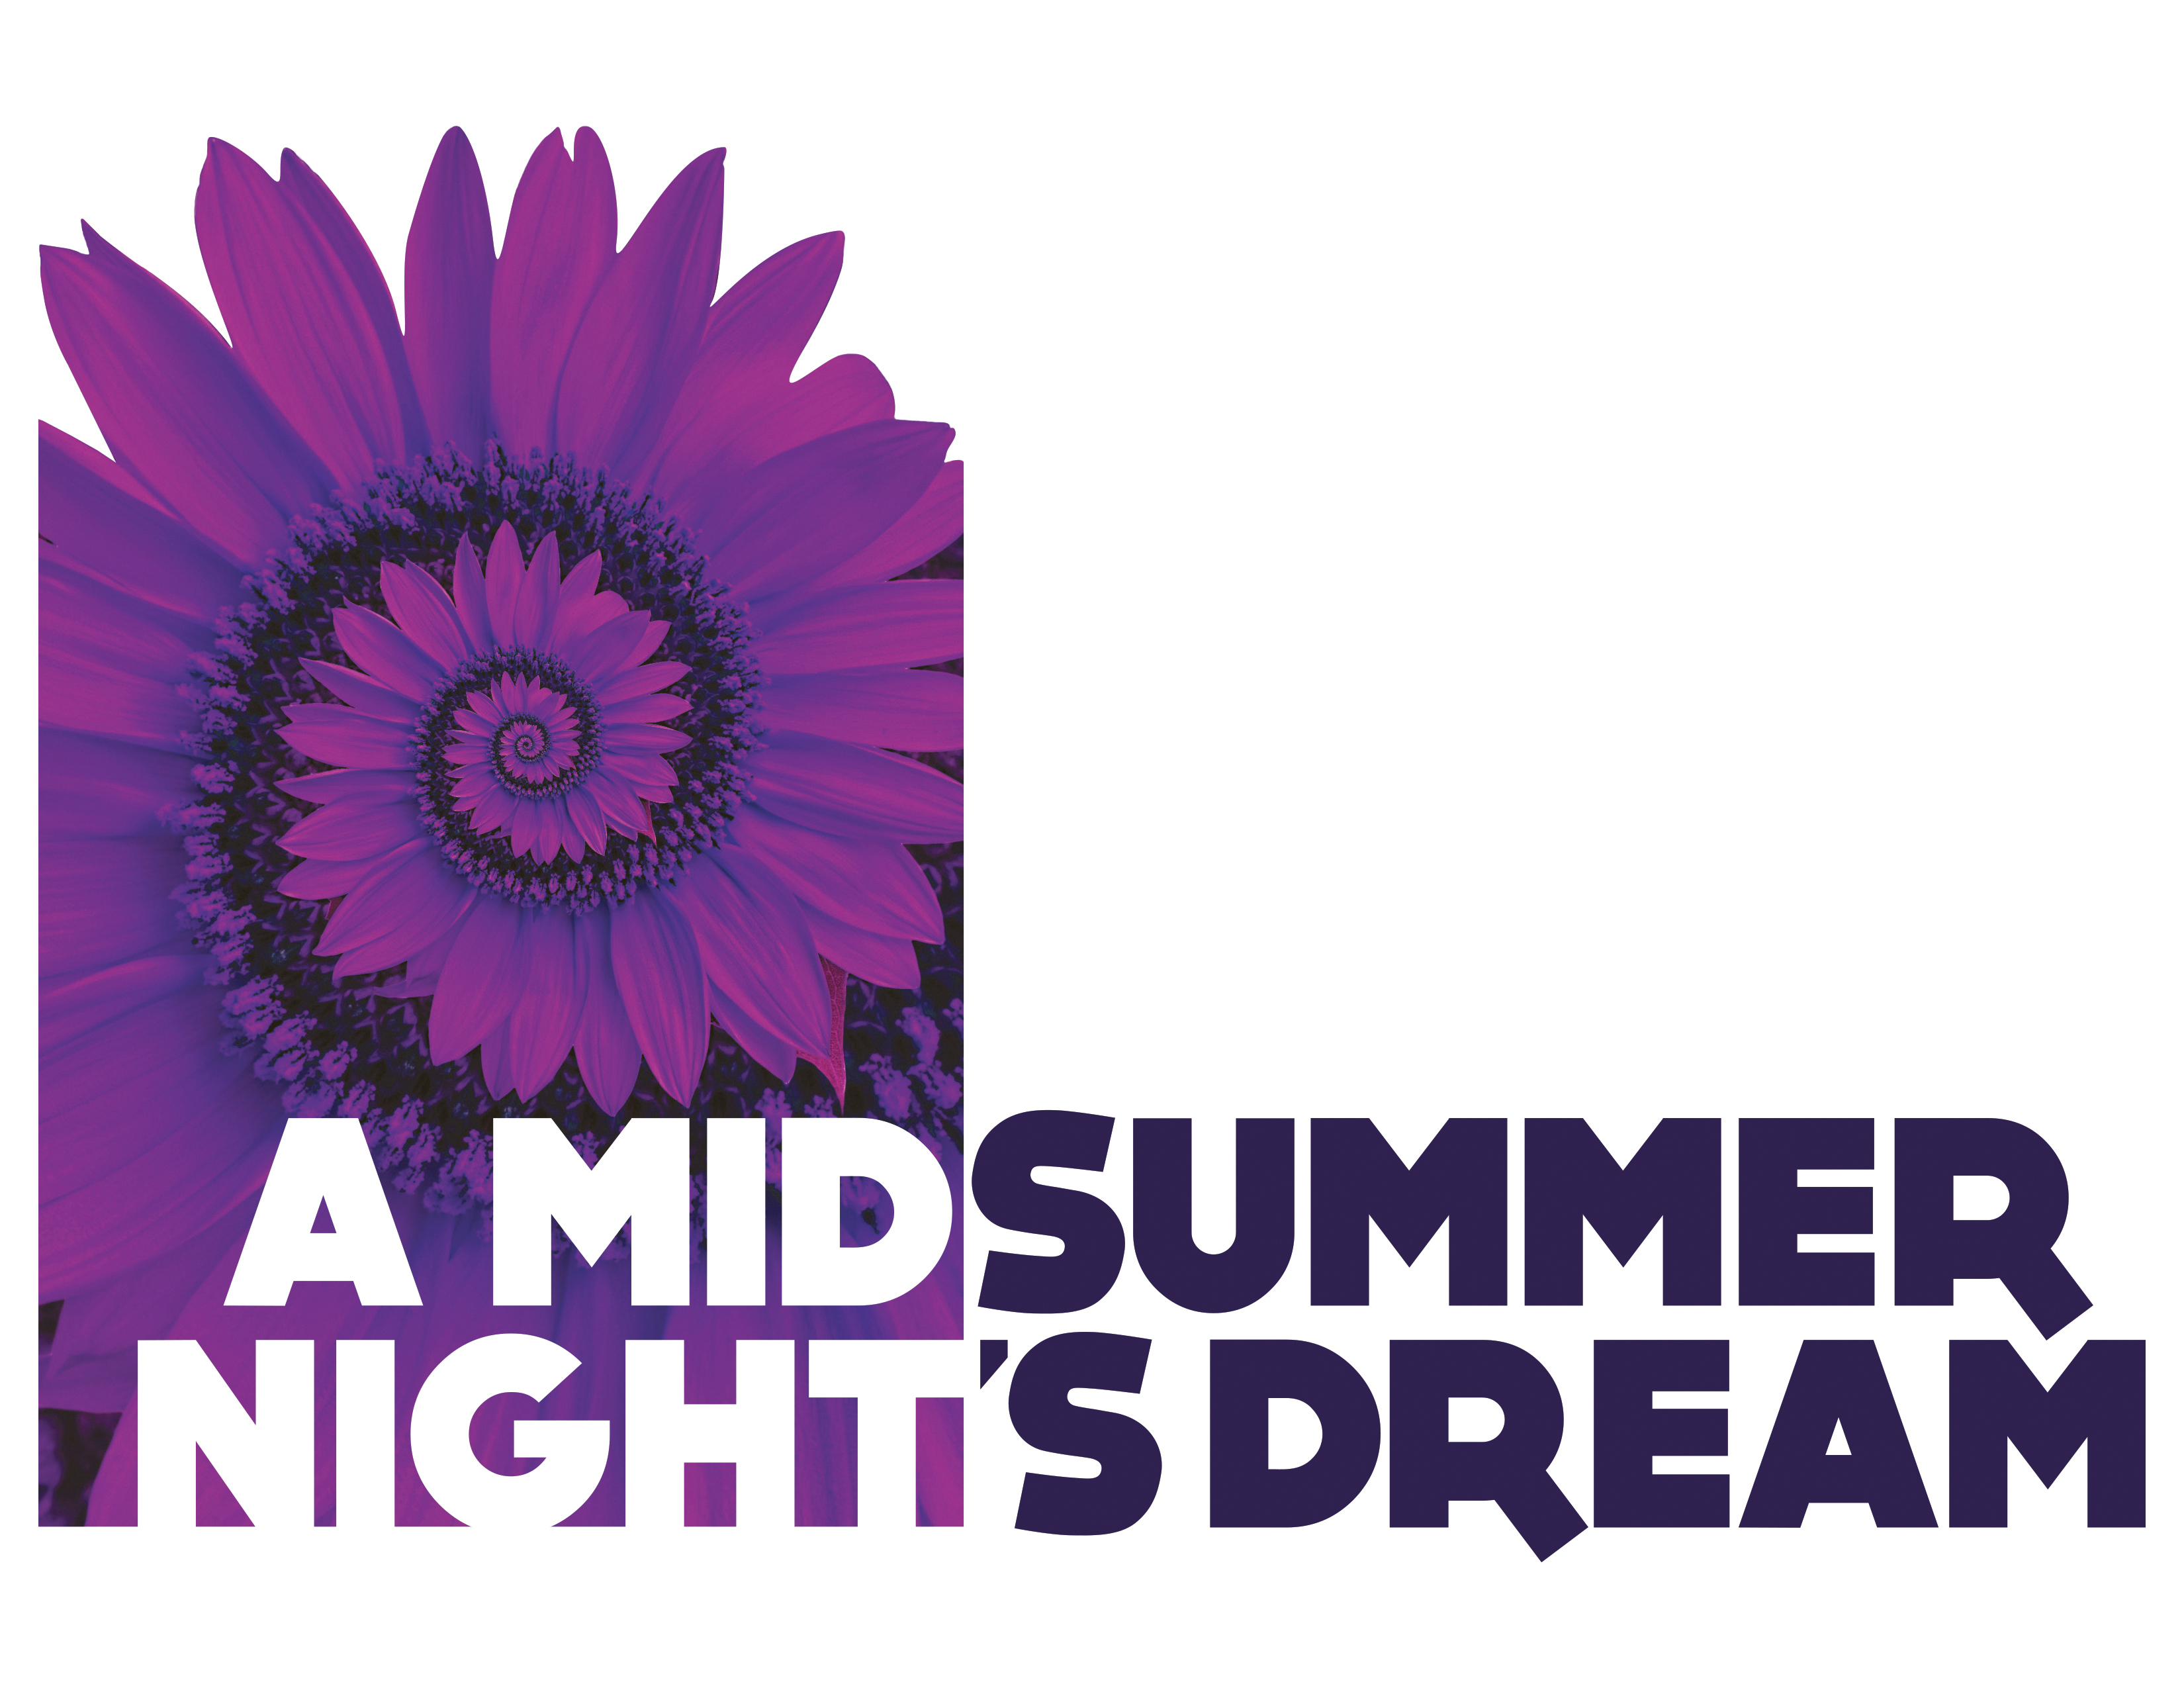 A Midsummer Night's Dream by William Shakespeare [05/06/16]